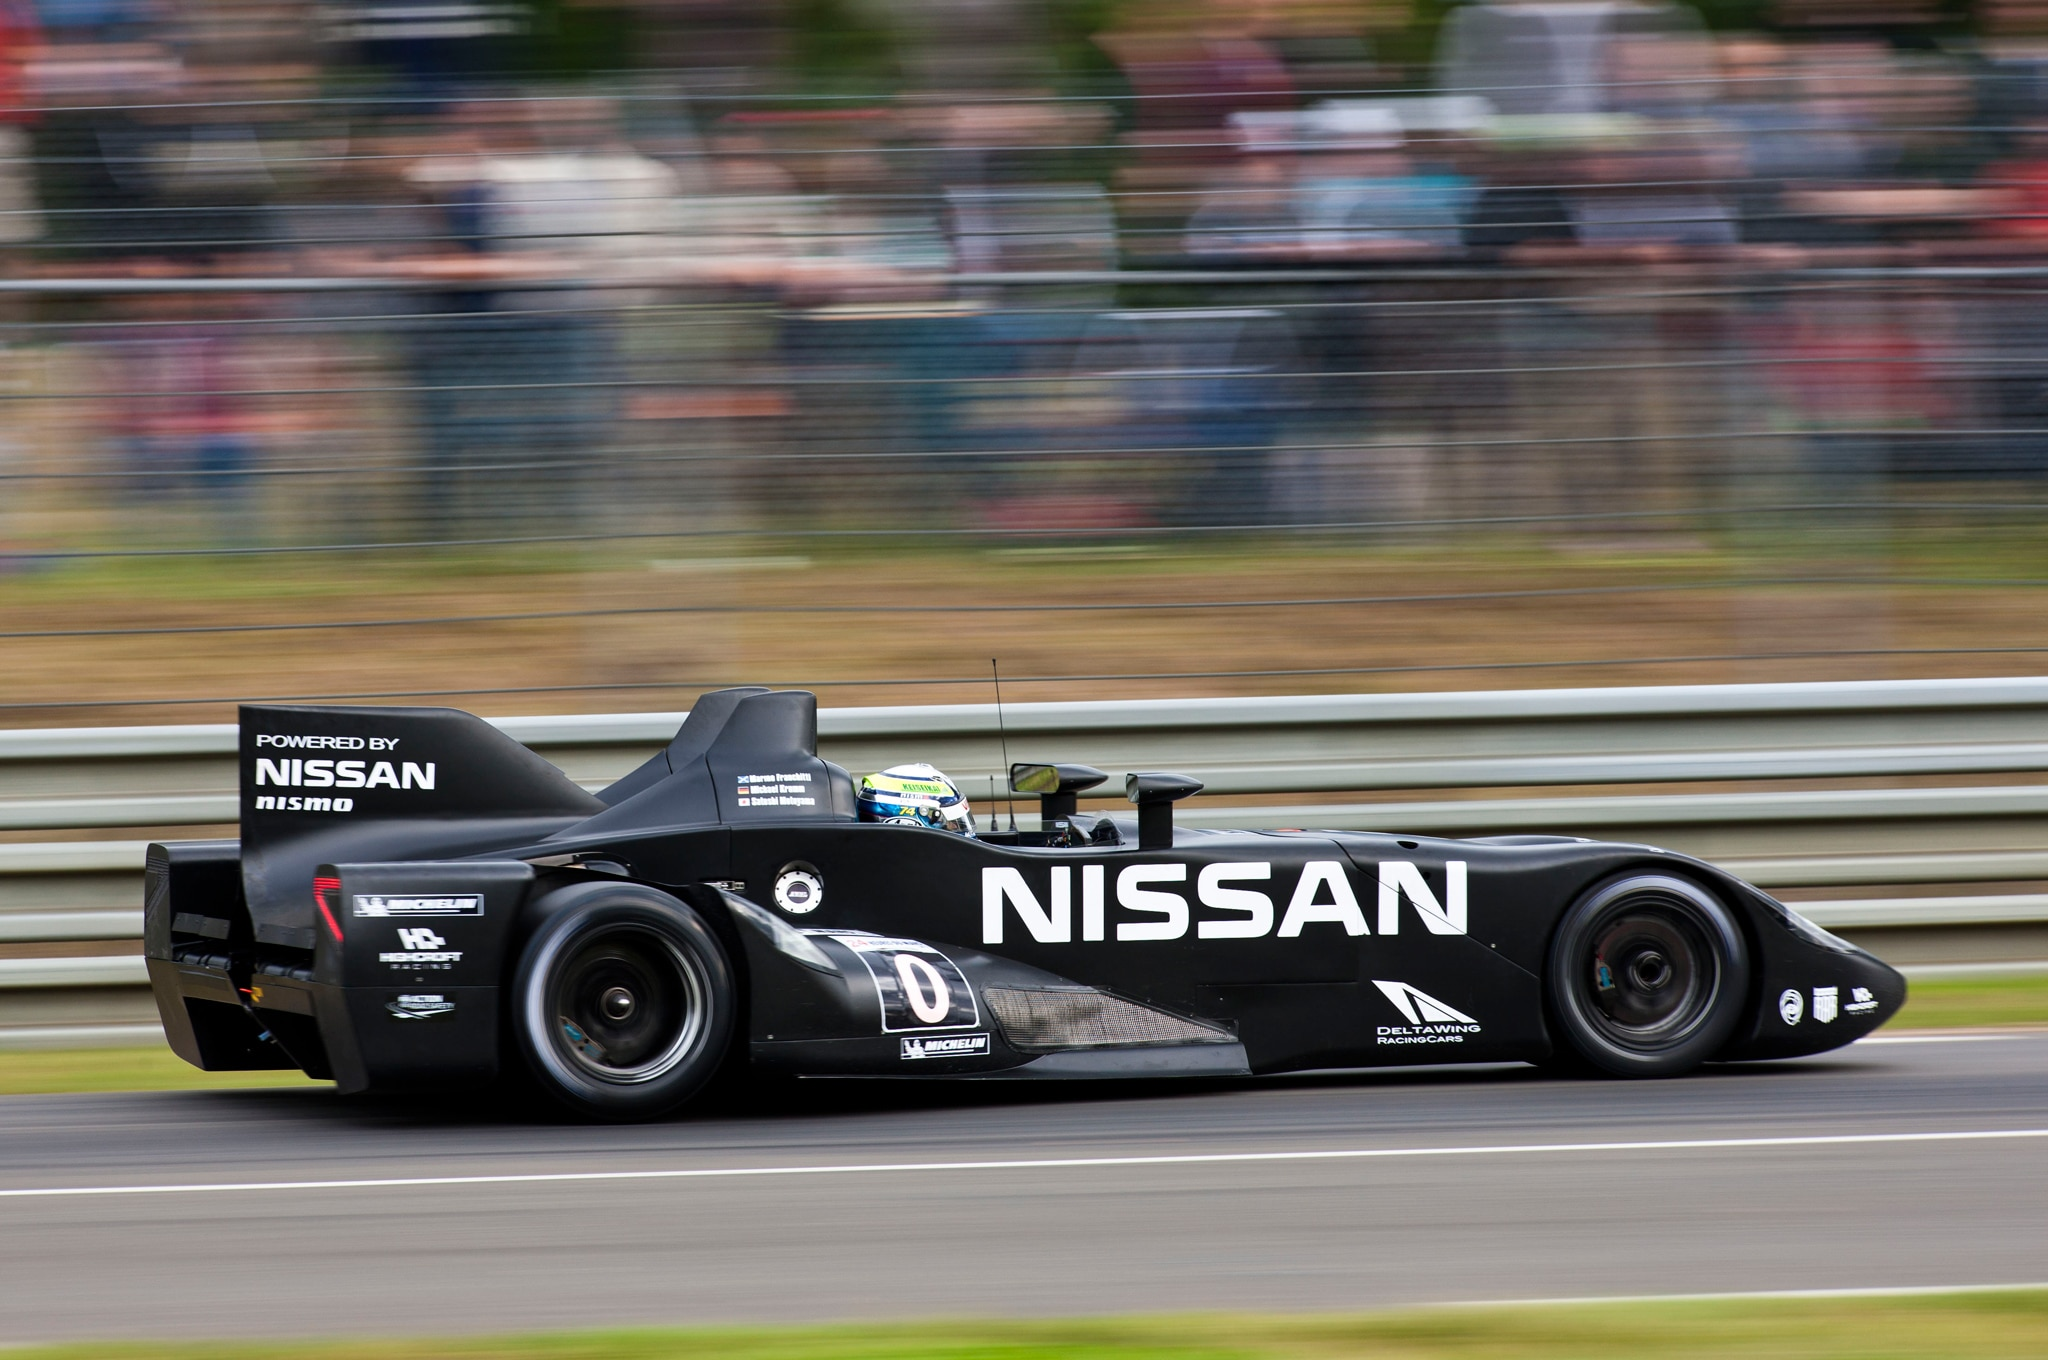 Panoz vs Nissan Lawsuit Overshadows DeltaWing Road Car Plan